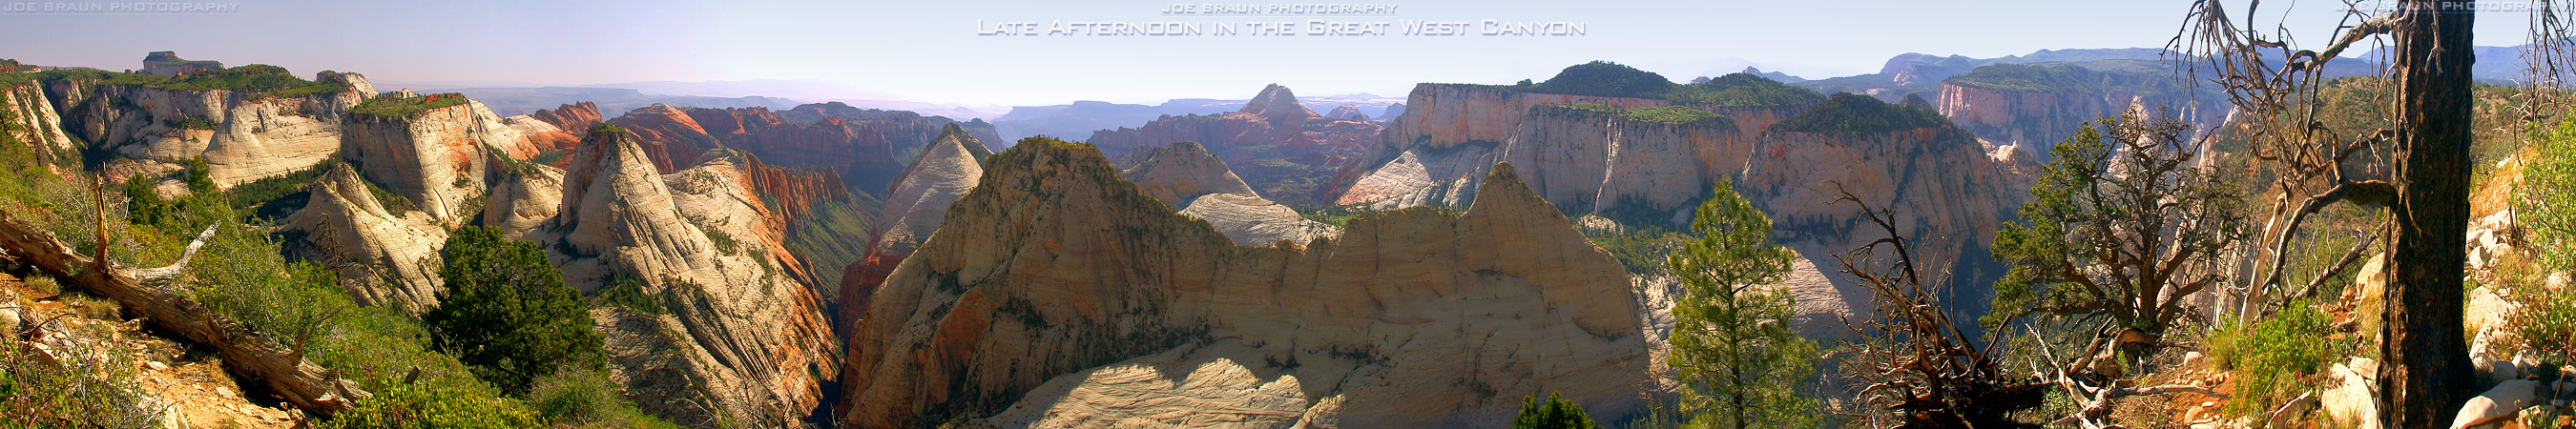 Great West Canyon Panorama (Zion National Park) -- © 2002 Joe Braun Photography